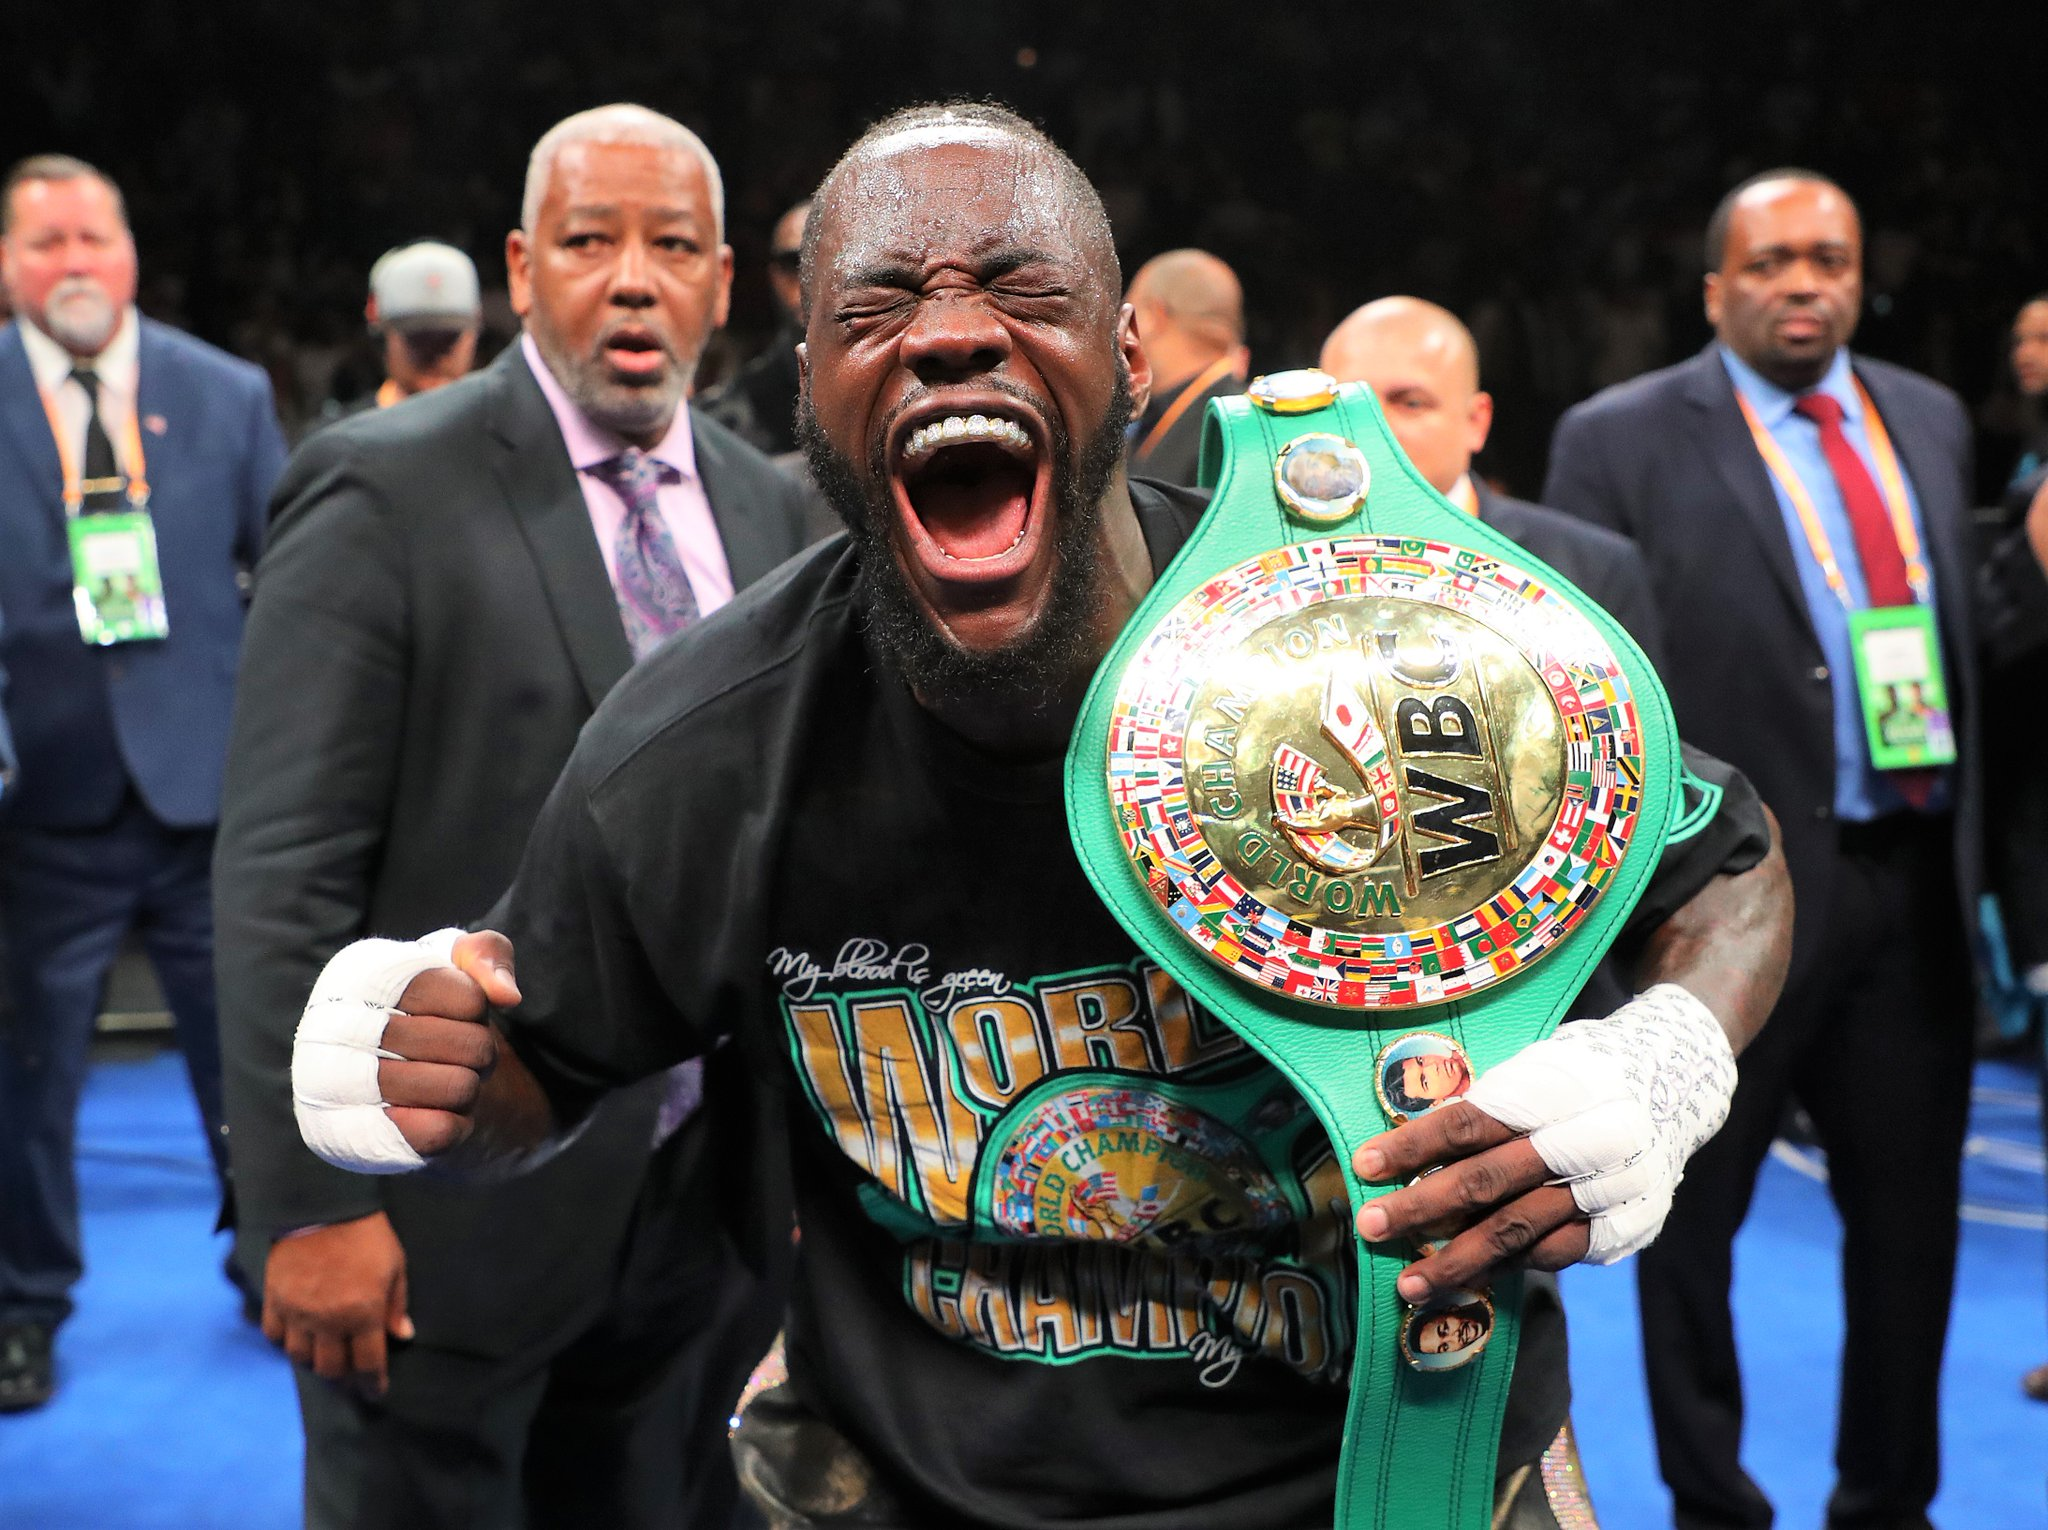 IMG 20190529 123906 - Wilder to Face Ortiz, Opens Up Fury Against Whyte Later in Year